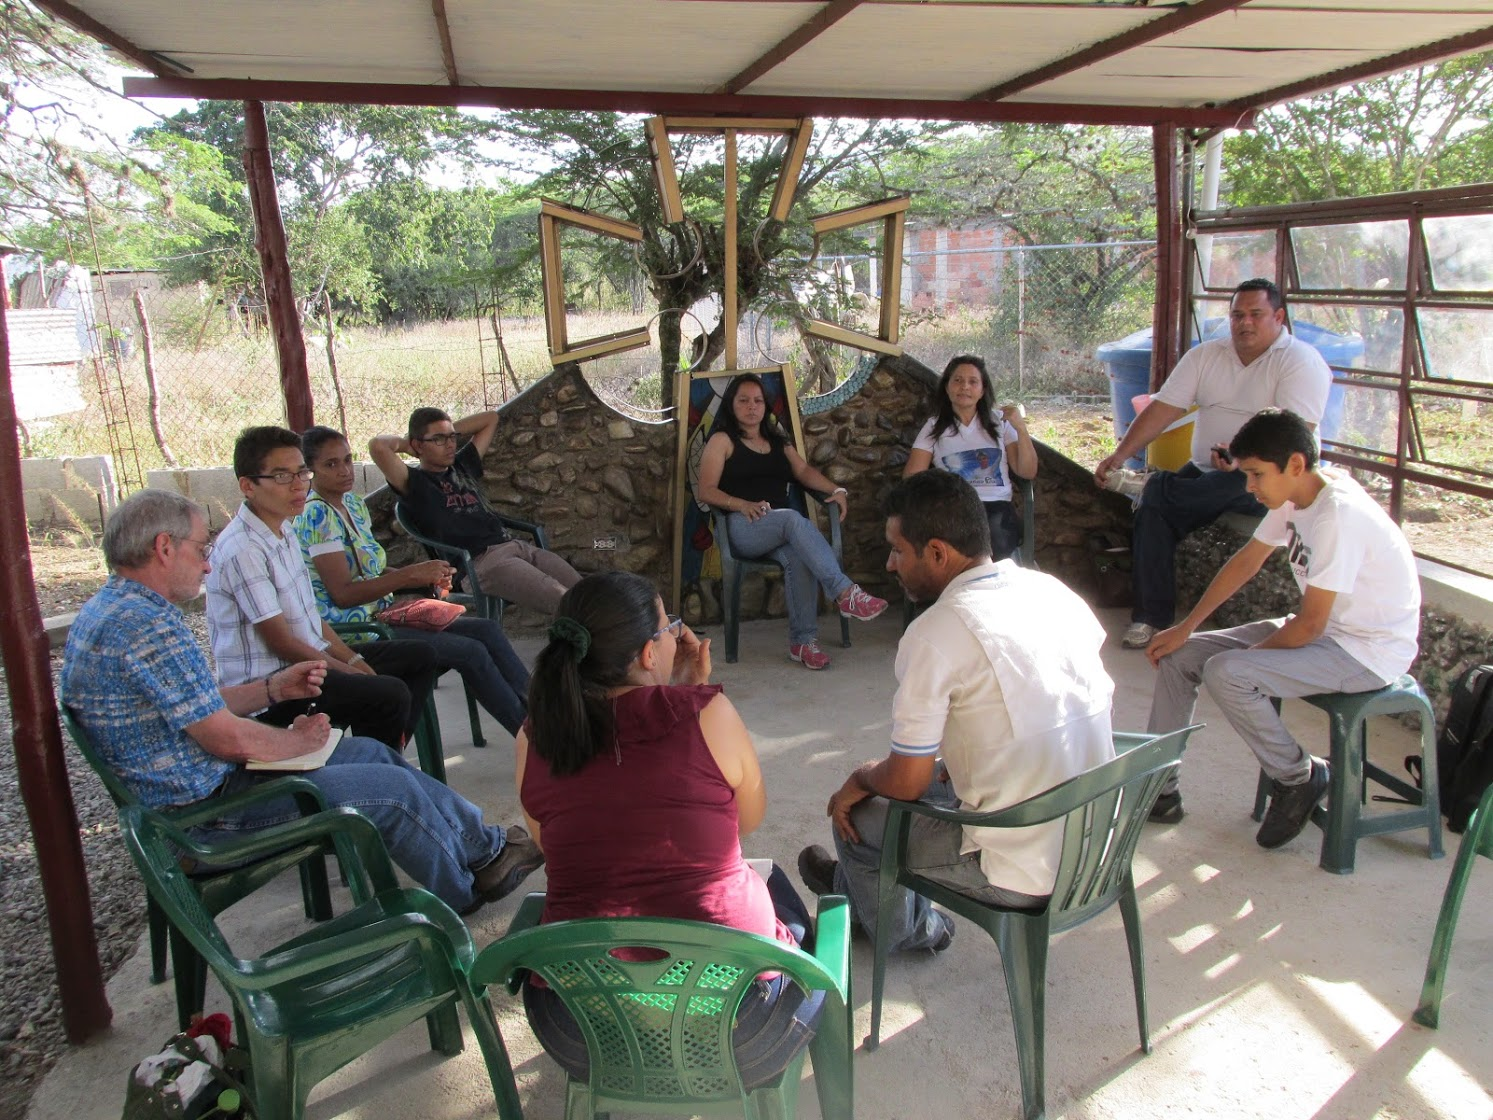 Dennis listens to young church leaders in Barquisimeto, Venezuela in 2016.